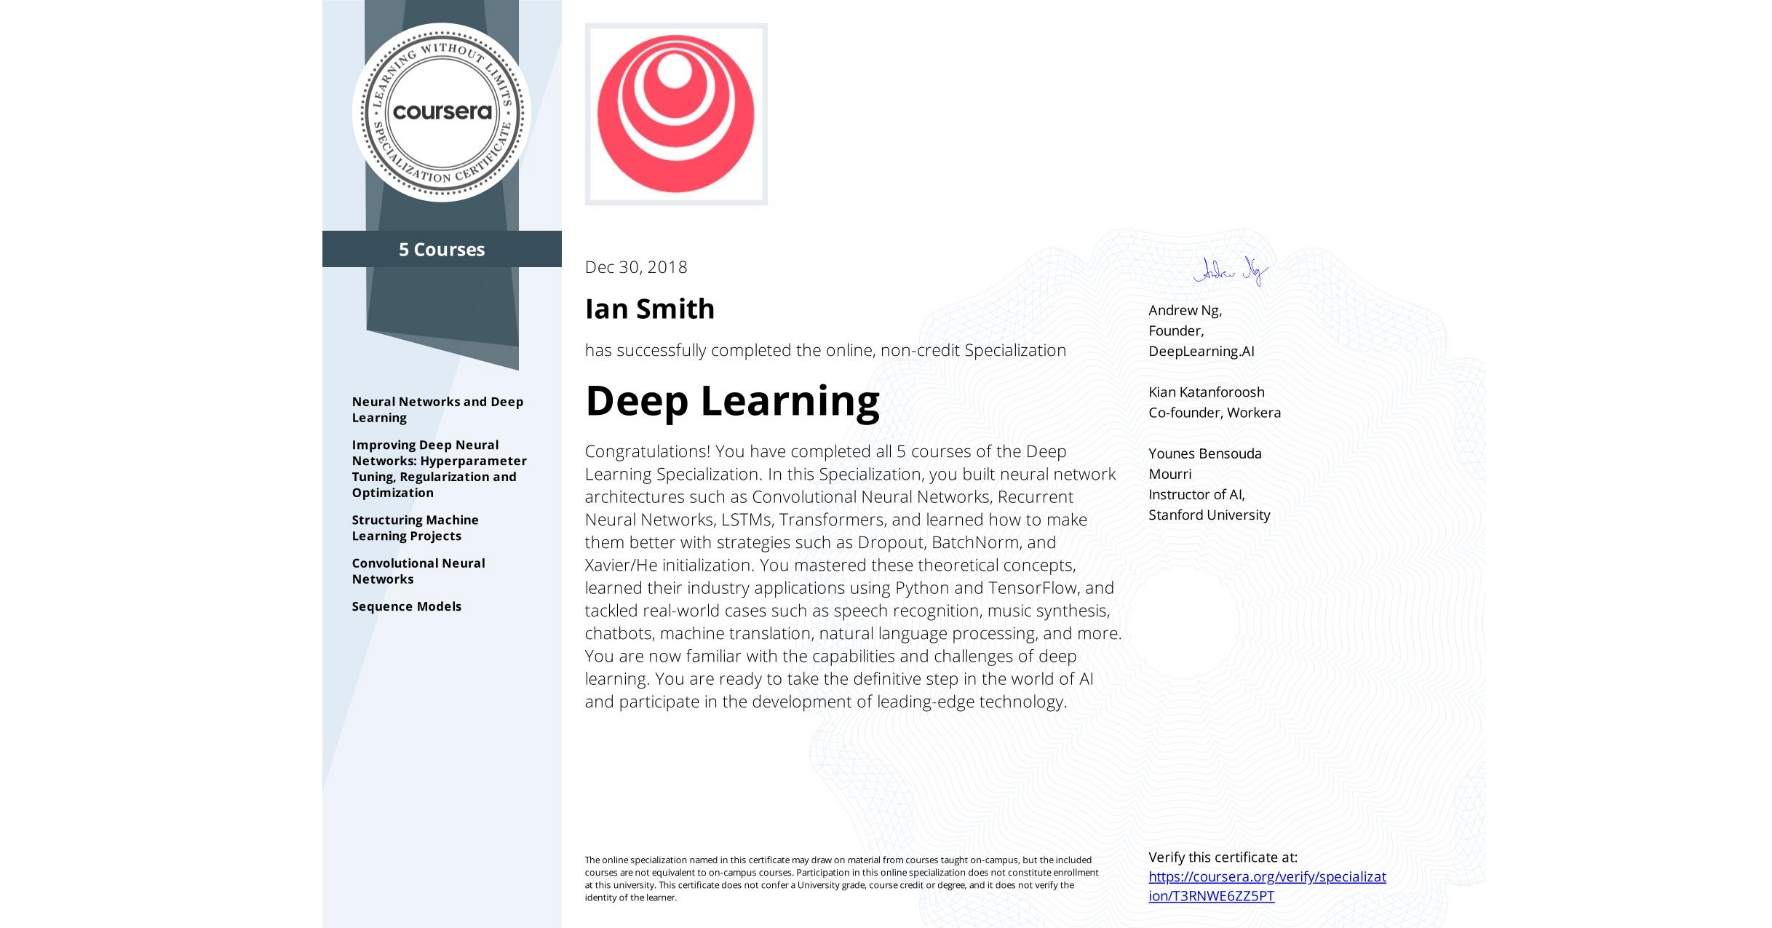 View certificate for Ian Smith, Deep Learning, offered through Coursera. The Deep Learning Specialization is designed to prepare learners to participate in the development of cutting-edge AI technology, and to understand the capability, the challenges, and the consequences of the rise of deep learning. Through five interconnected courses, learners develop a profound knowledge of the hottest AI algorithms, mastering deep learning from its foundations (neural networks) to its industry applications (Computer Vision, Natural Language Processing, Speech Recognition, etc.).